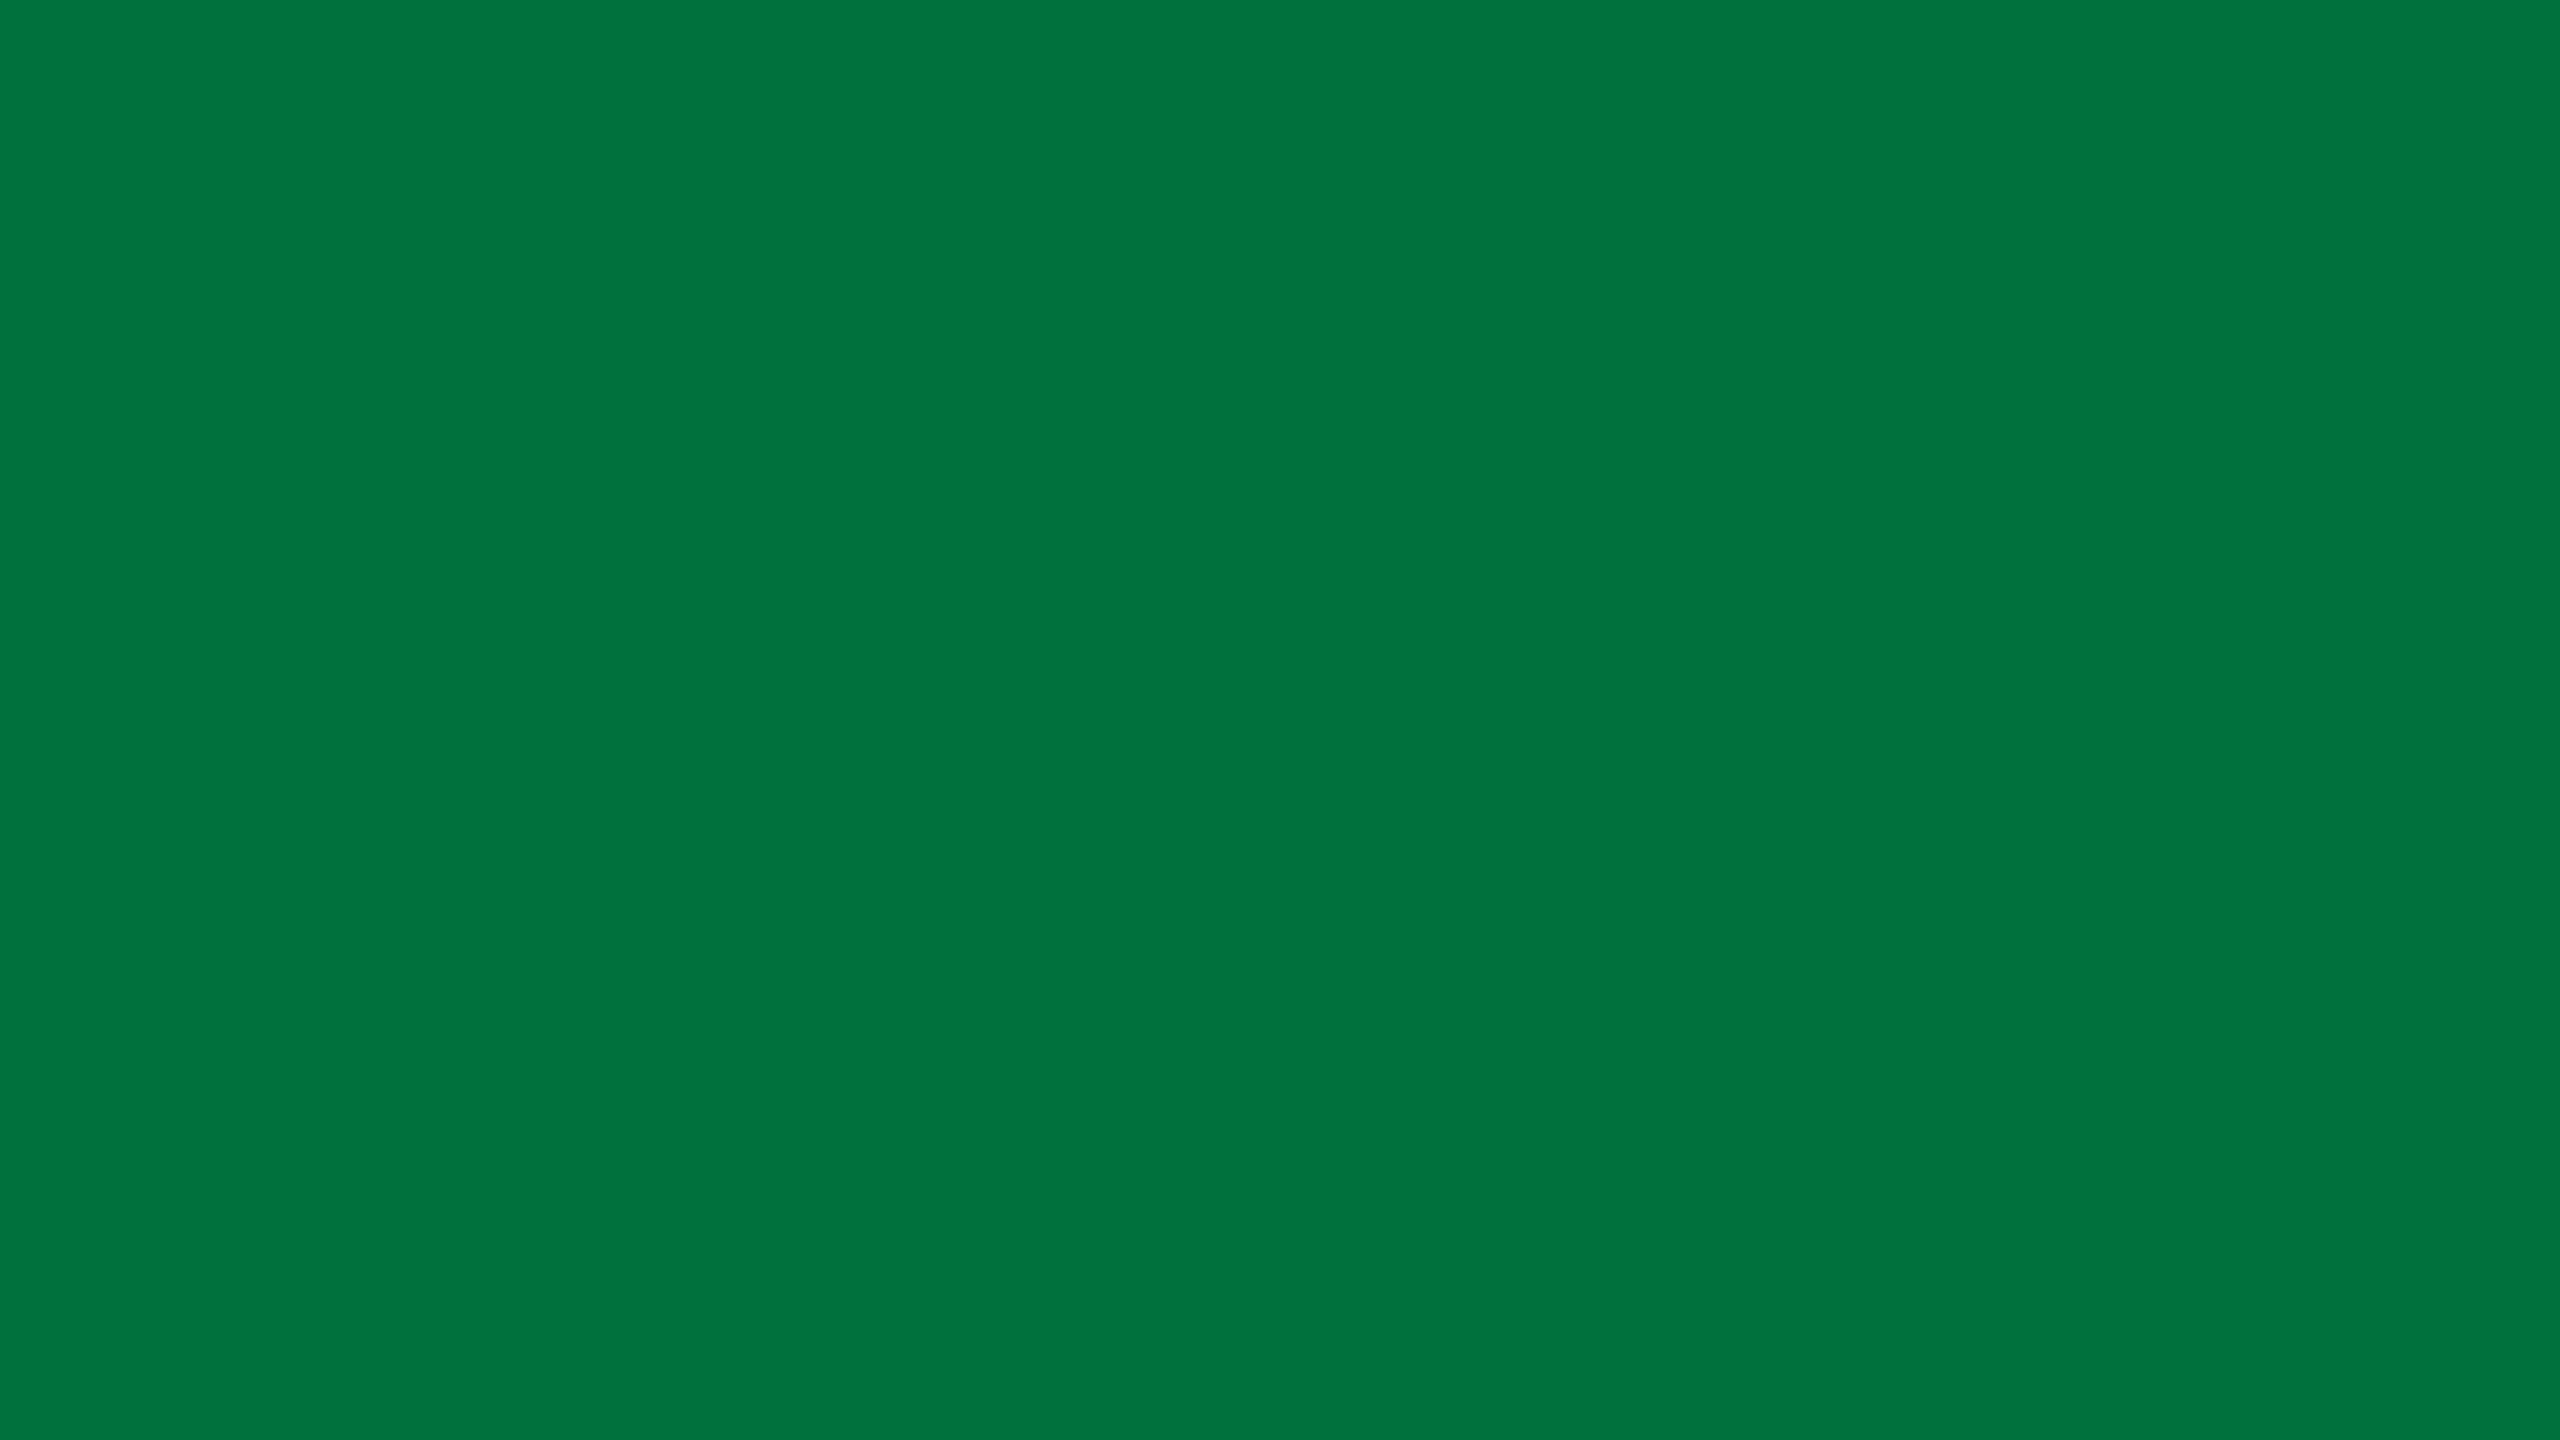 2560x1440 Dartmouth Green Solid Color Background